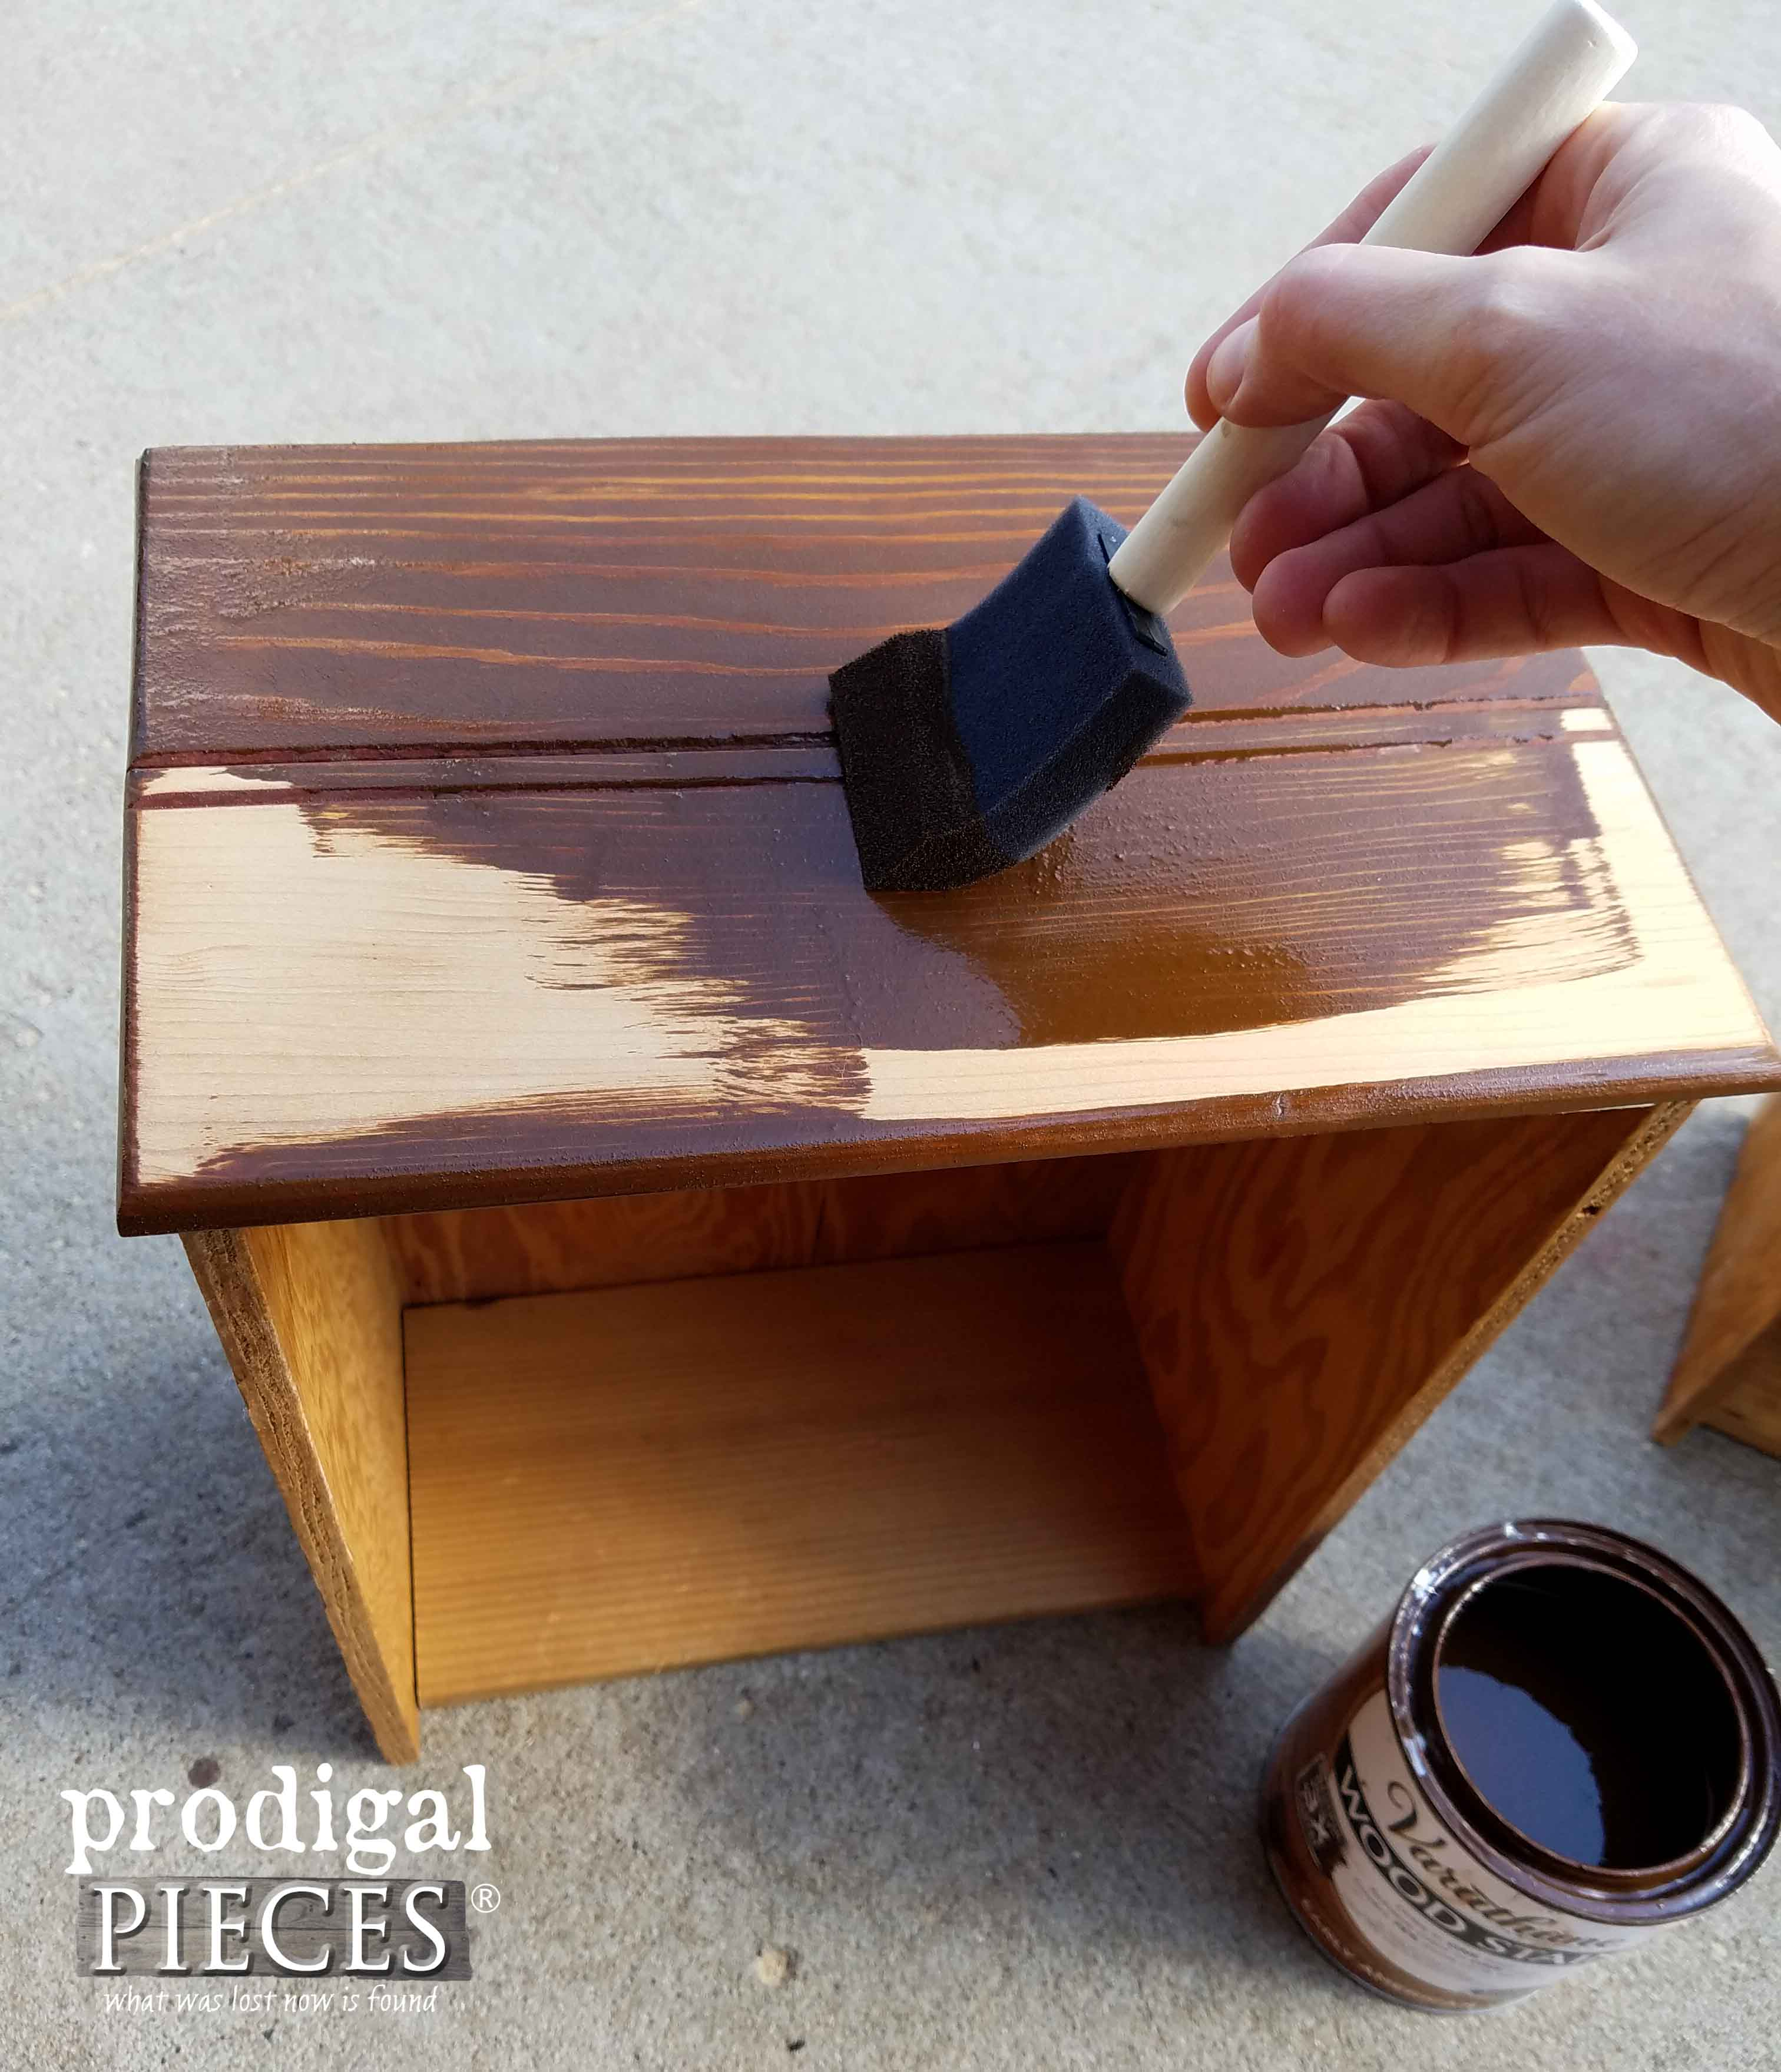 Staining Apothecary Cabinet Drawers | Prodigal Pieces | prodigalpieces.com